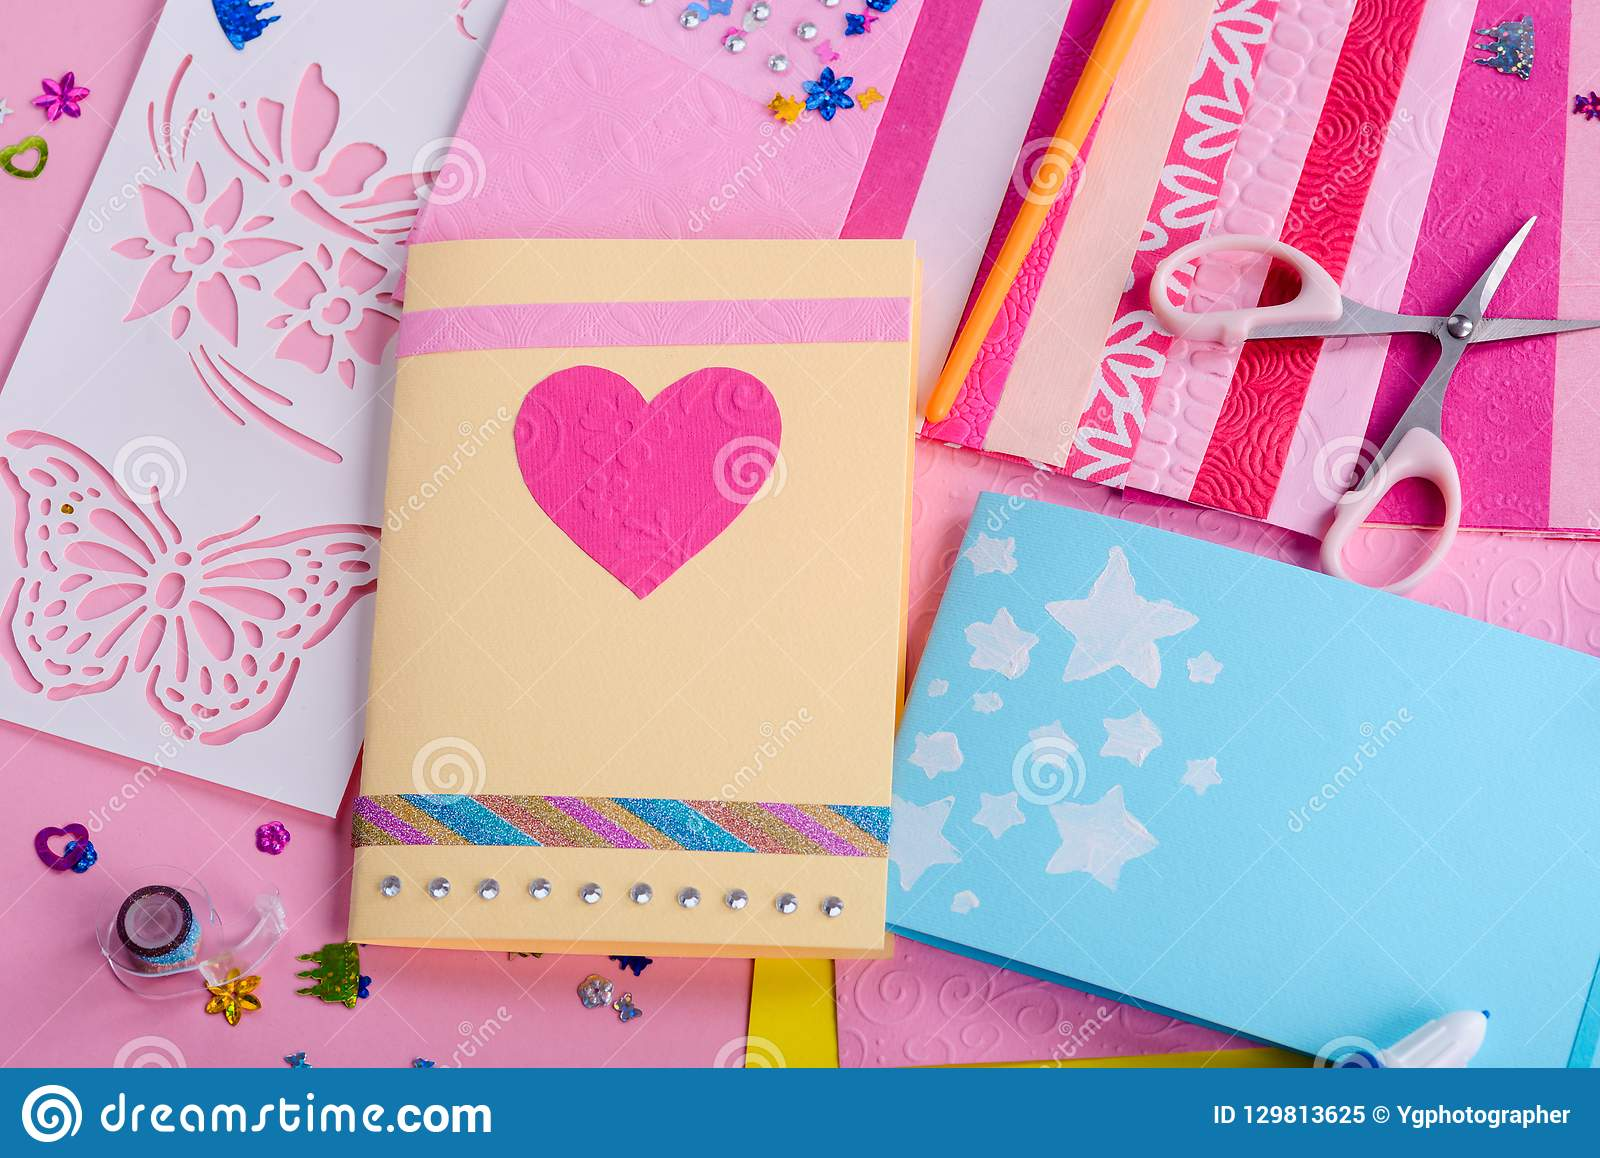 Greeting Card With Pink Heart Stock Image Image Of